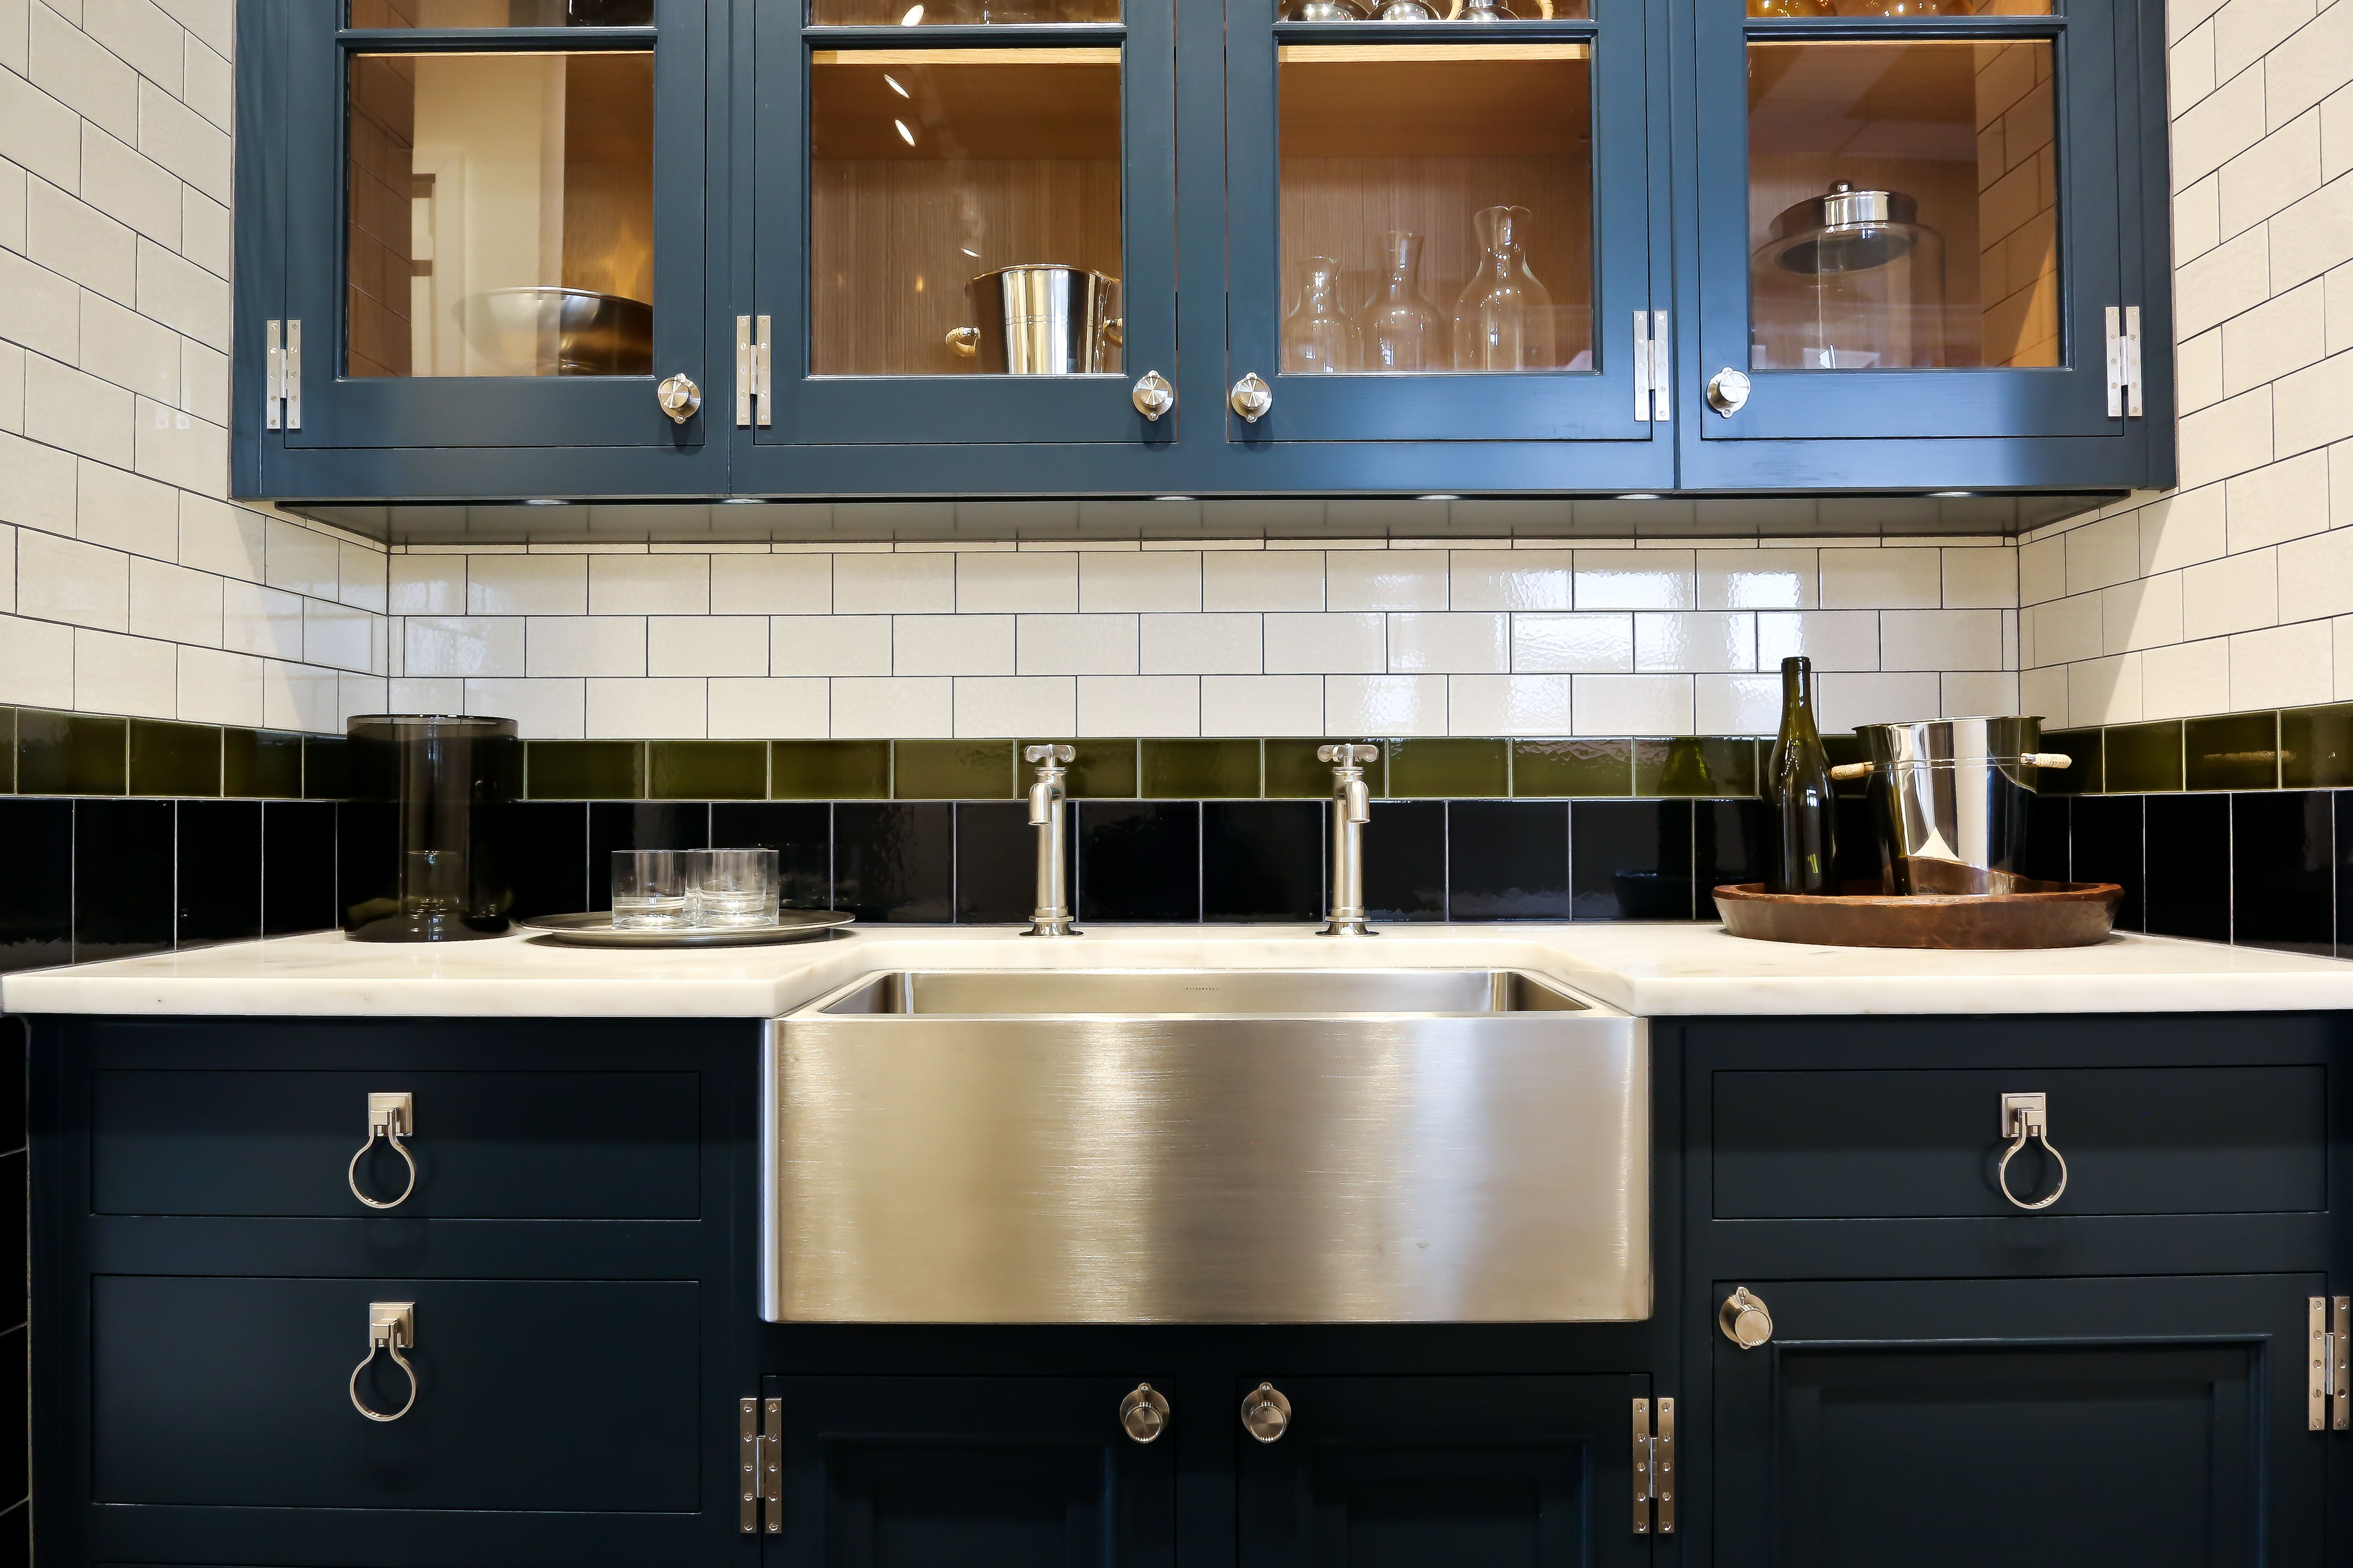 Cabinetry Collections Waterworks Classic Kitchen Cabinets Navy Kitchen Cabinets Waterworks Kitchen